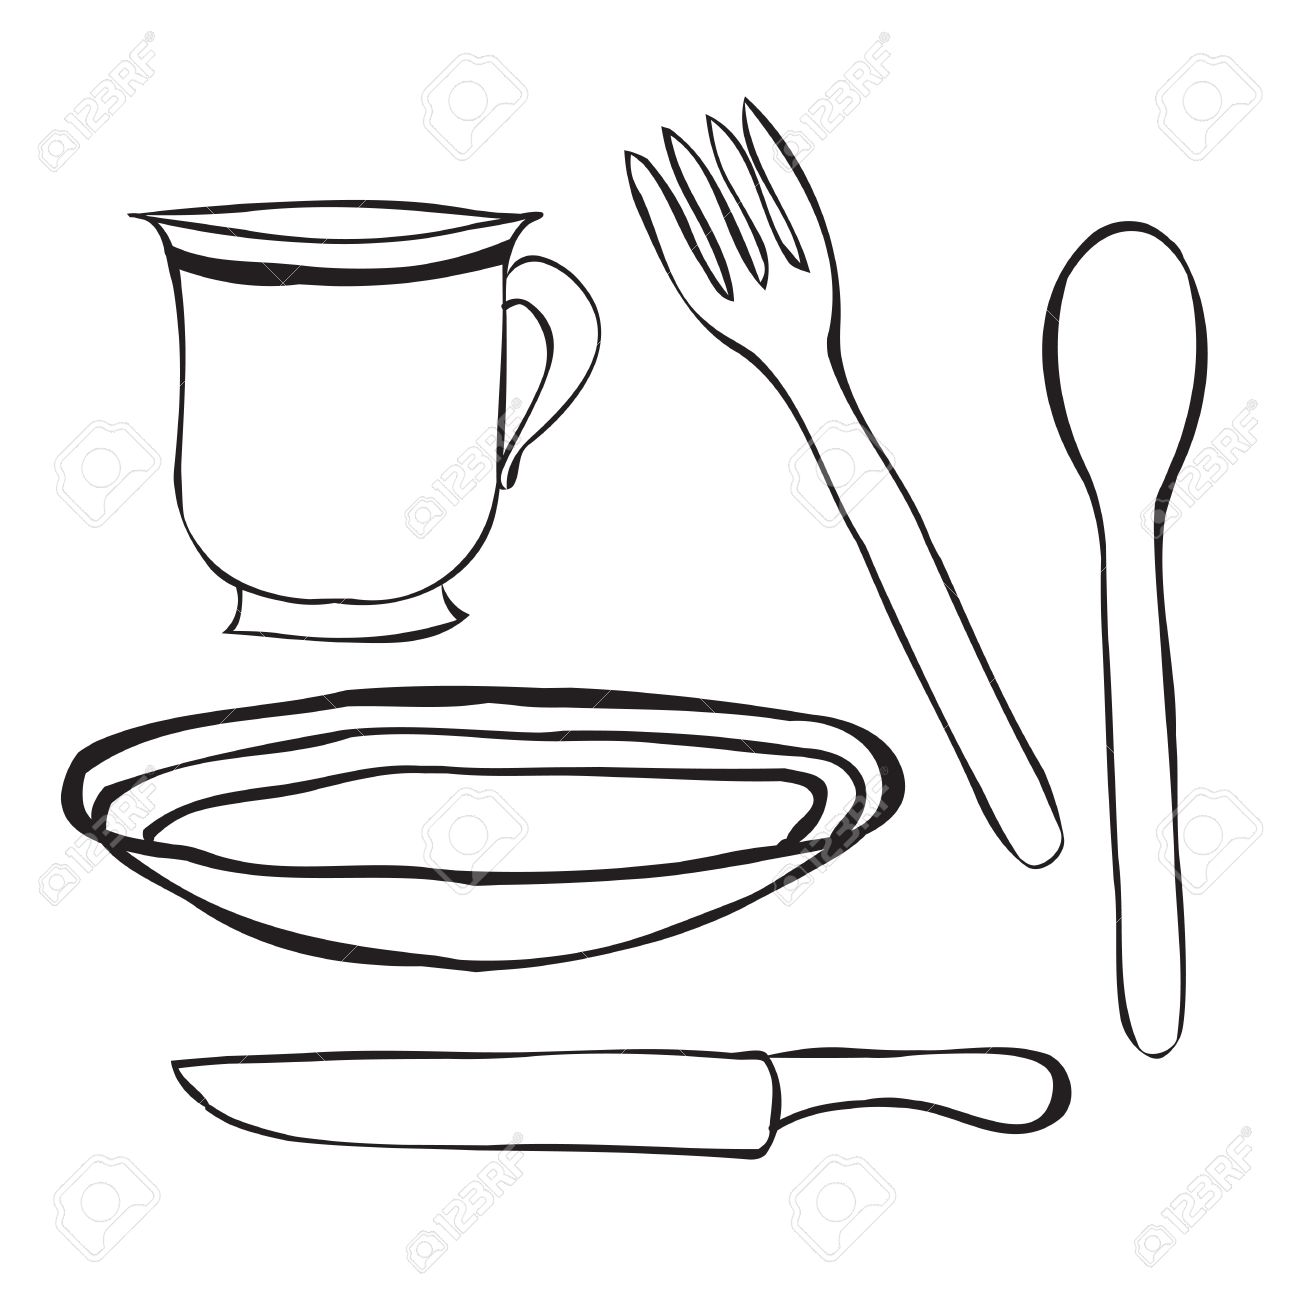 Table setting contours. Tableware cartoon . A simple spoon a plate fork knife and Cup.  sc 1 st  123RF.com & Tableware Cartoon . A Simple Spoon A Plate Fork Knife And ...